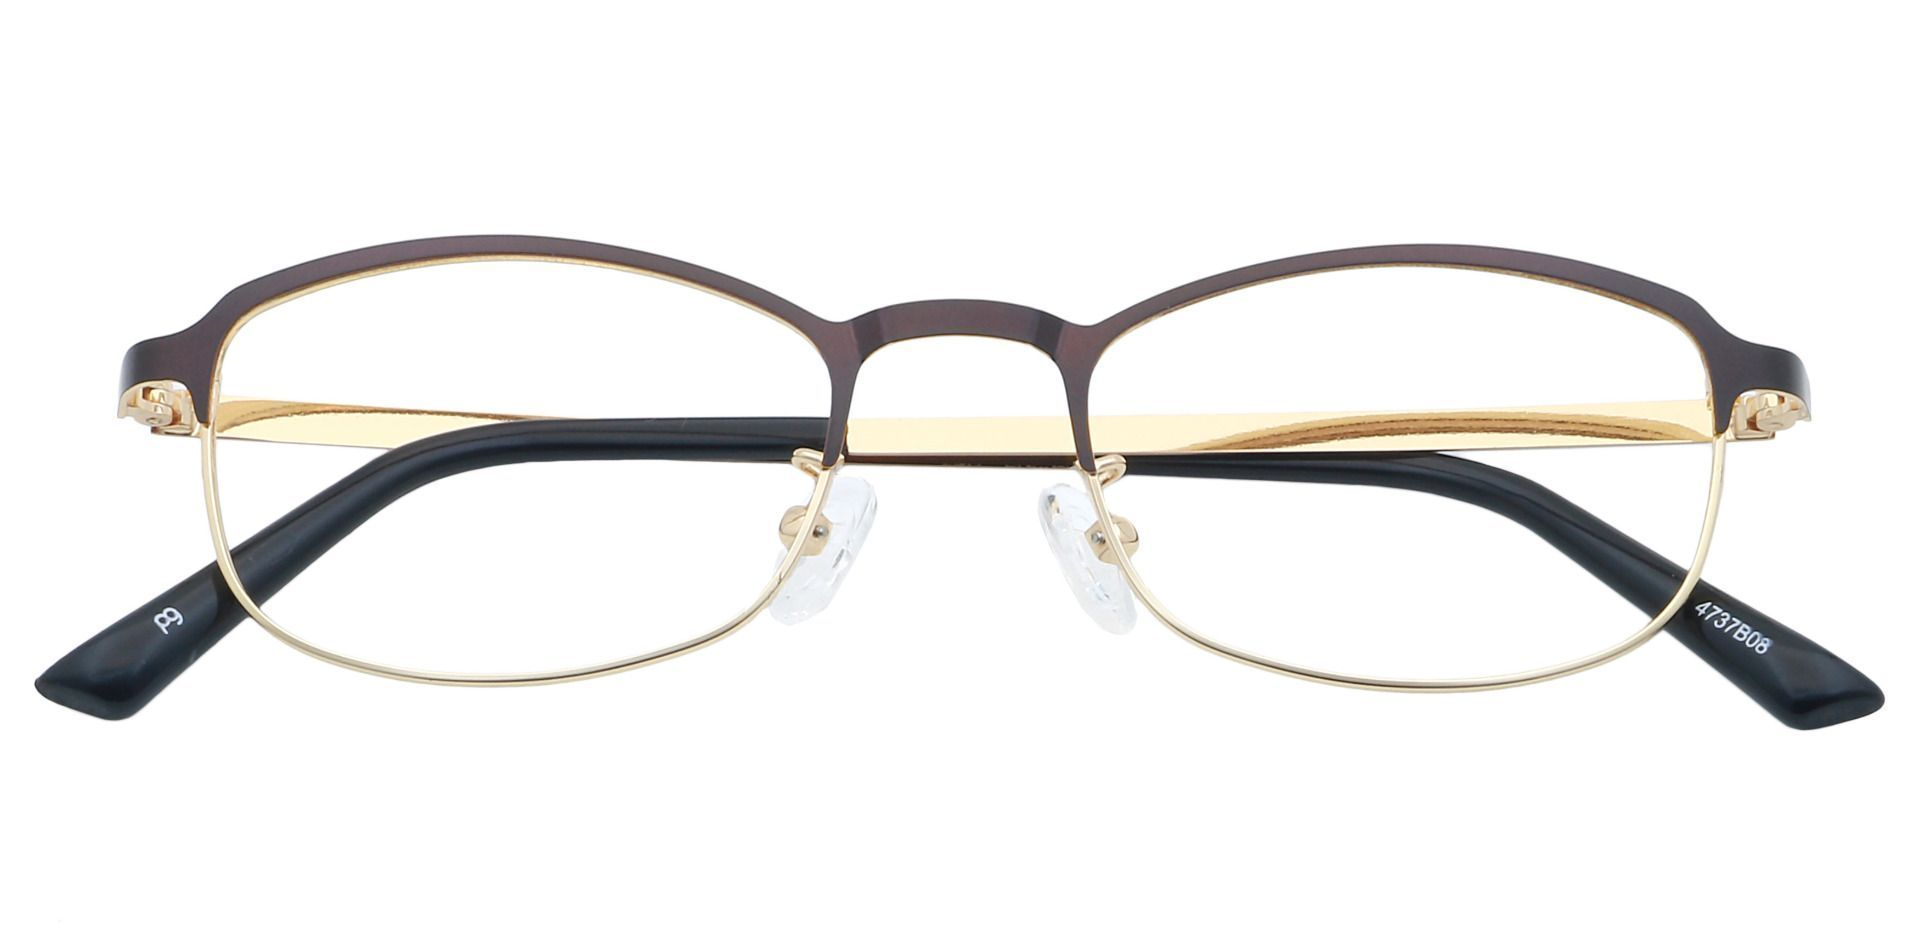 Tyrell Oval Non-Rx Glasses - Brown